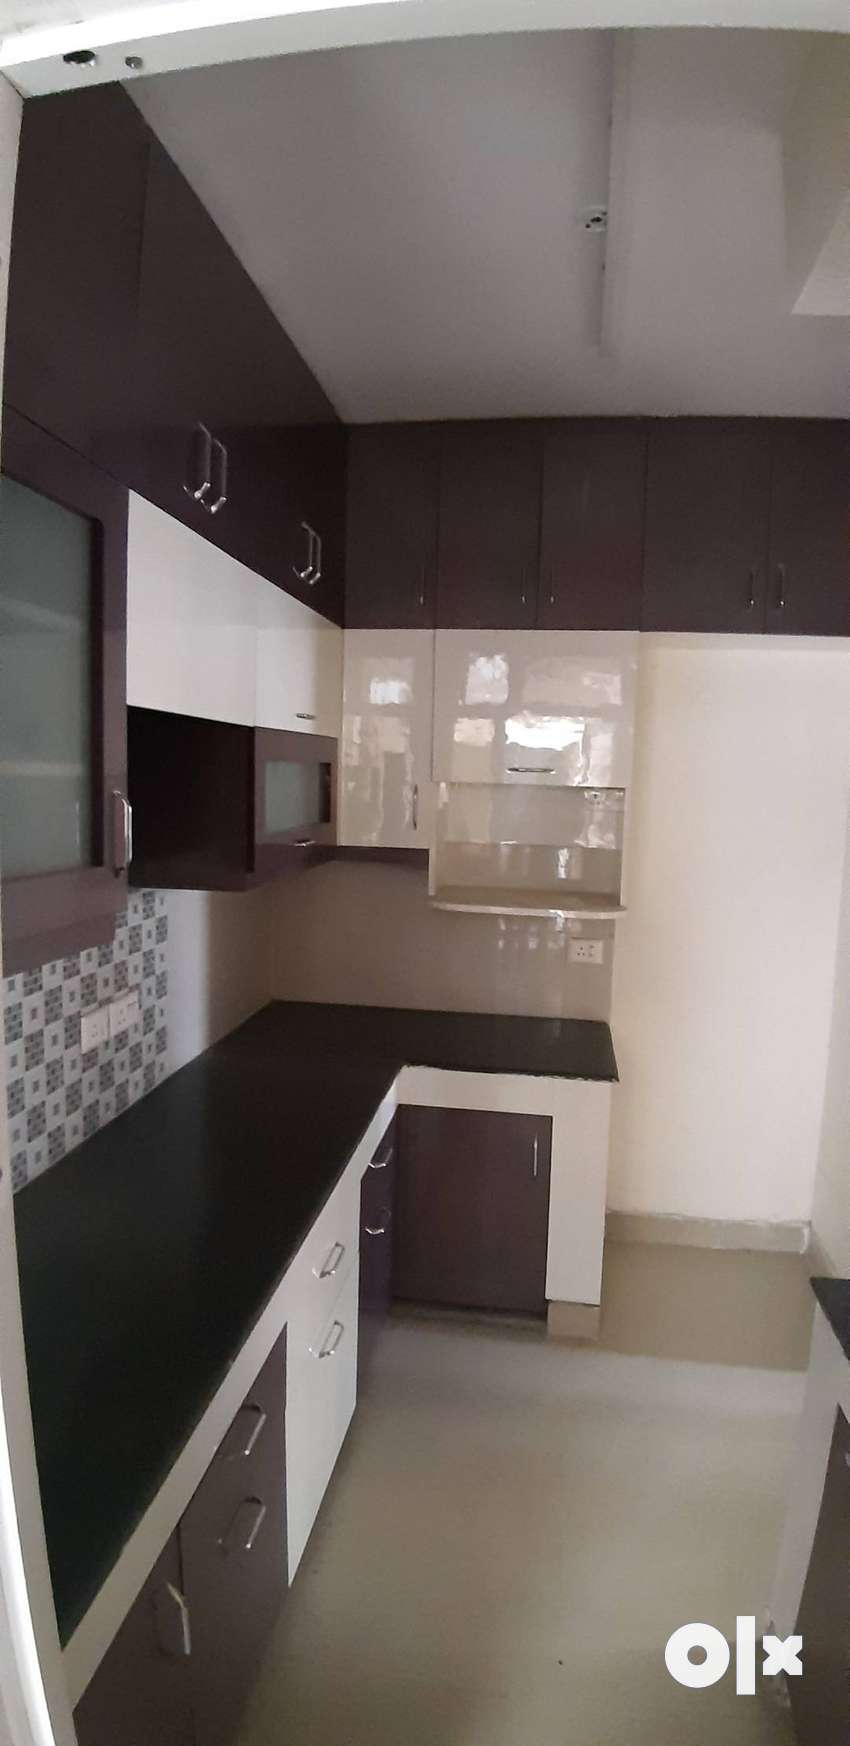 3bed+3br semi furnished available in shri radha sky garden 0